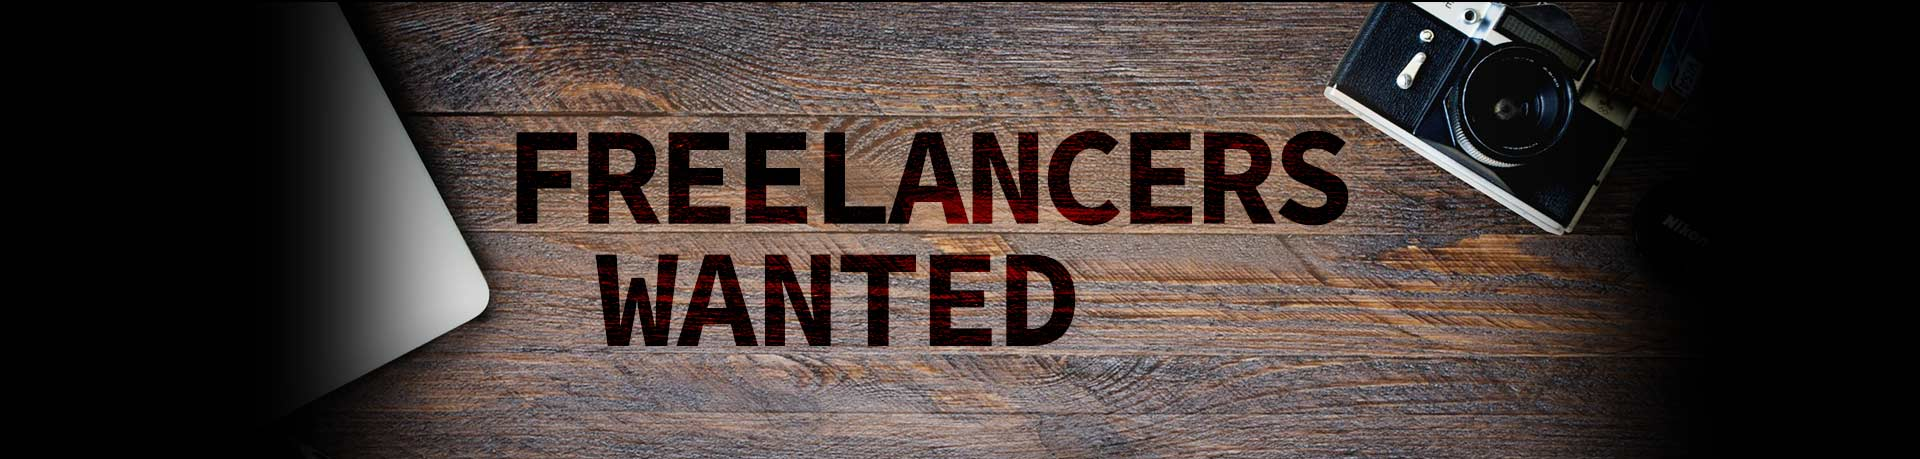 Freelancers Wanted